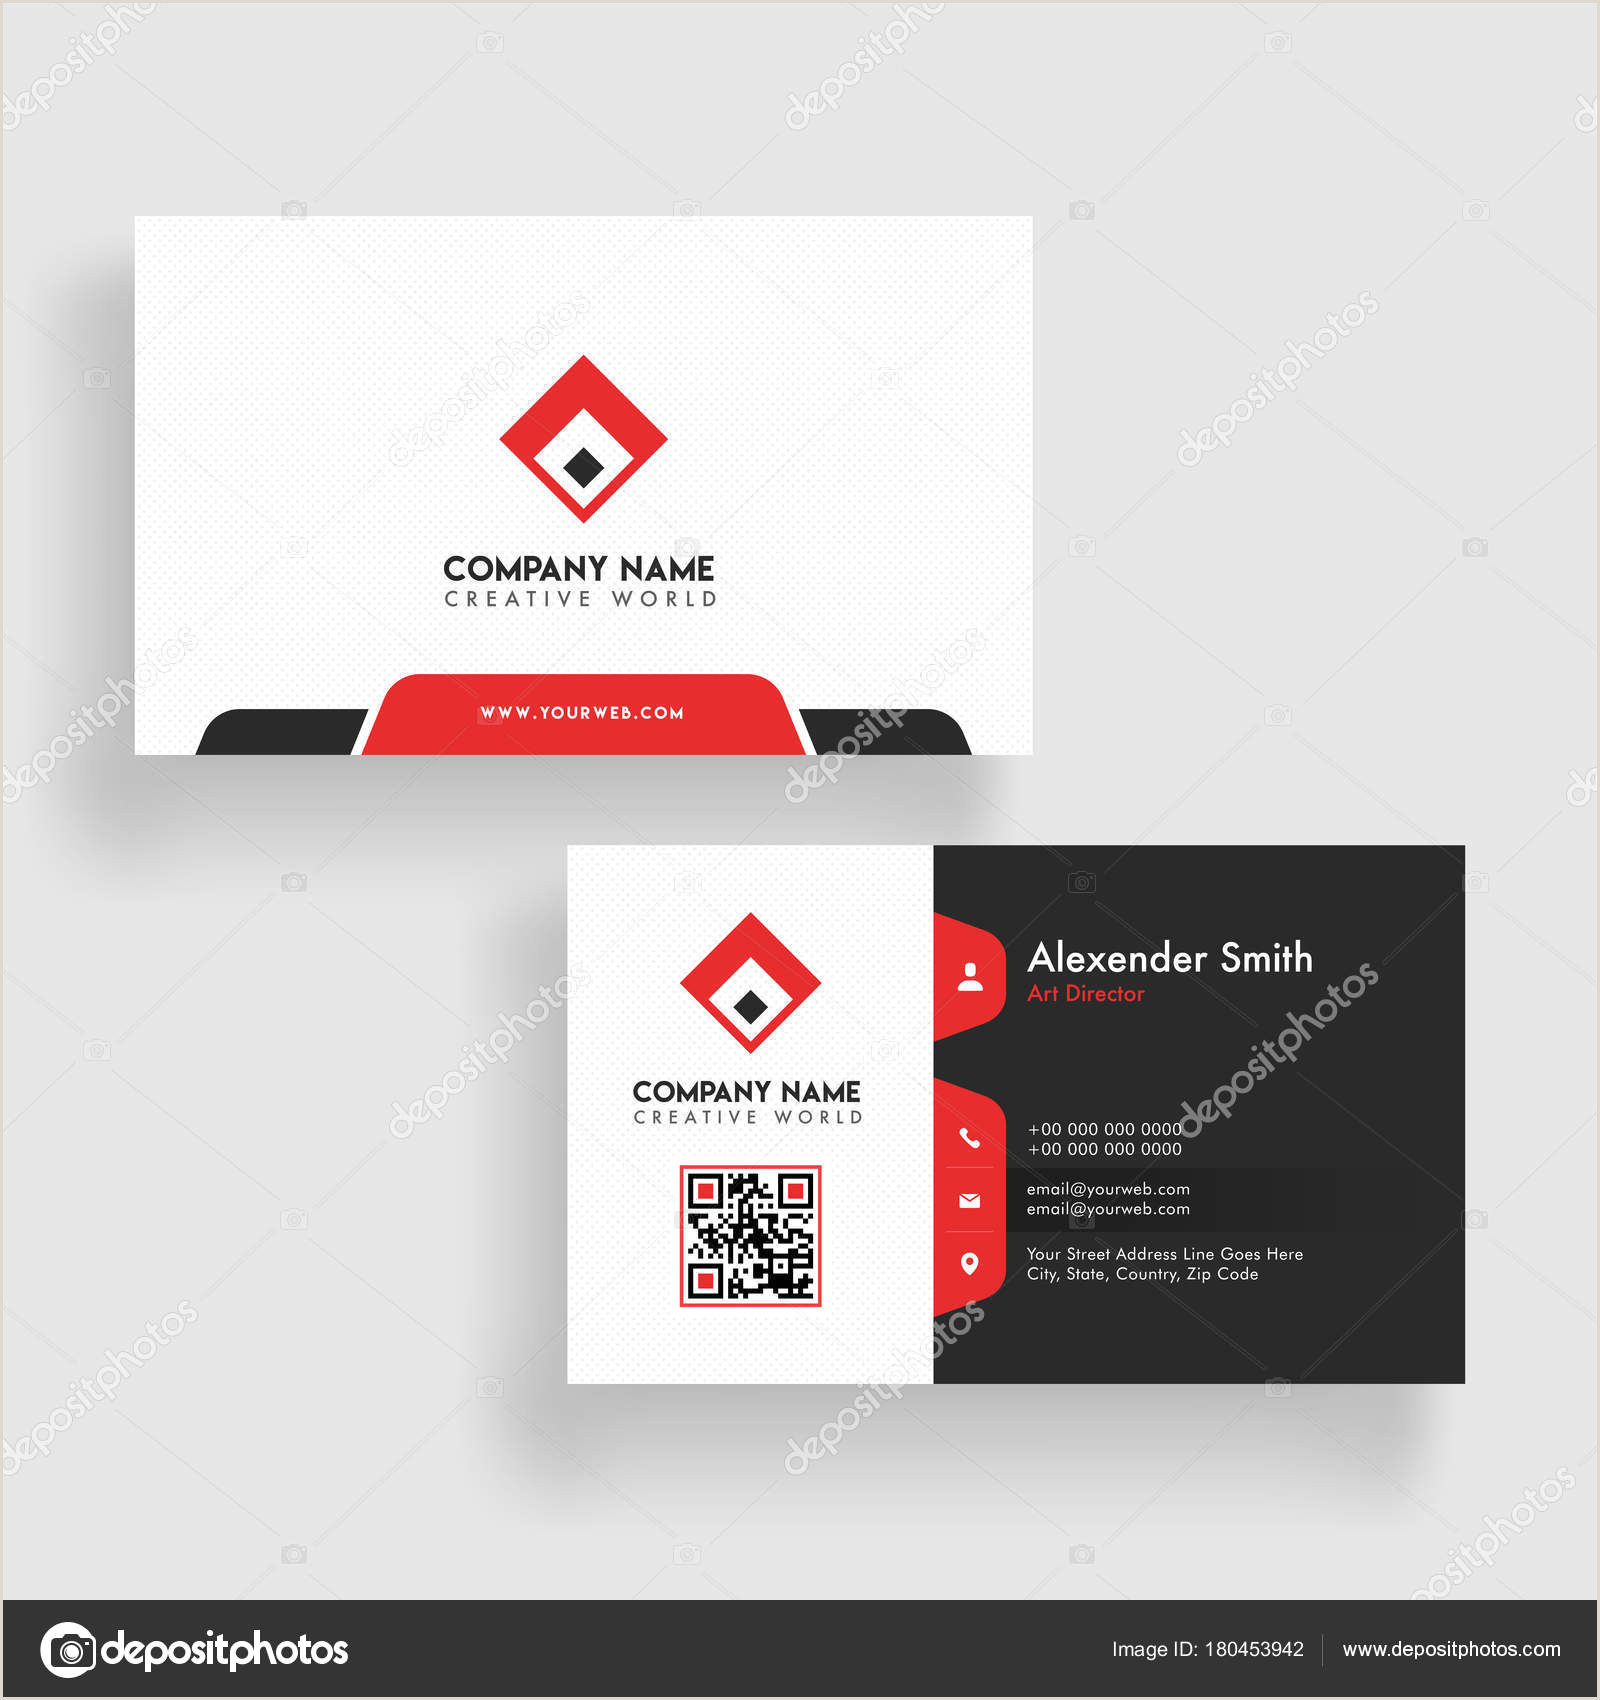 Best Business Cards? Modern Business Card Template Design Both Sided Contact Card F